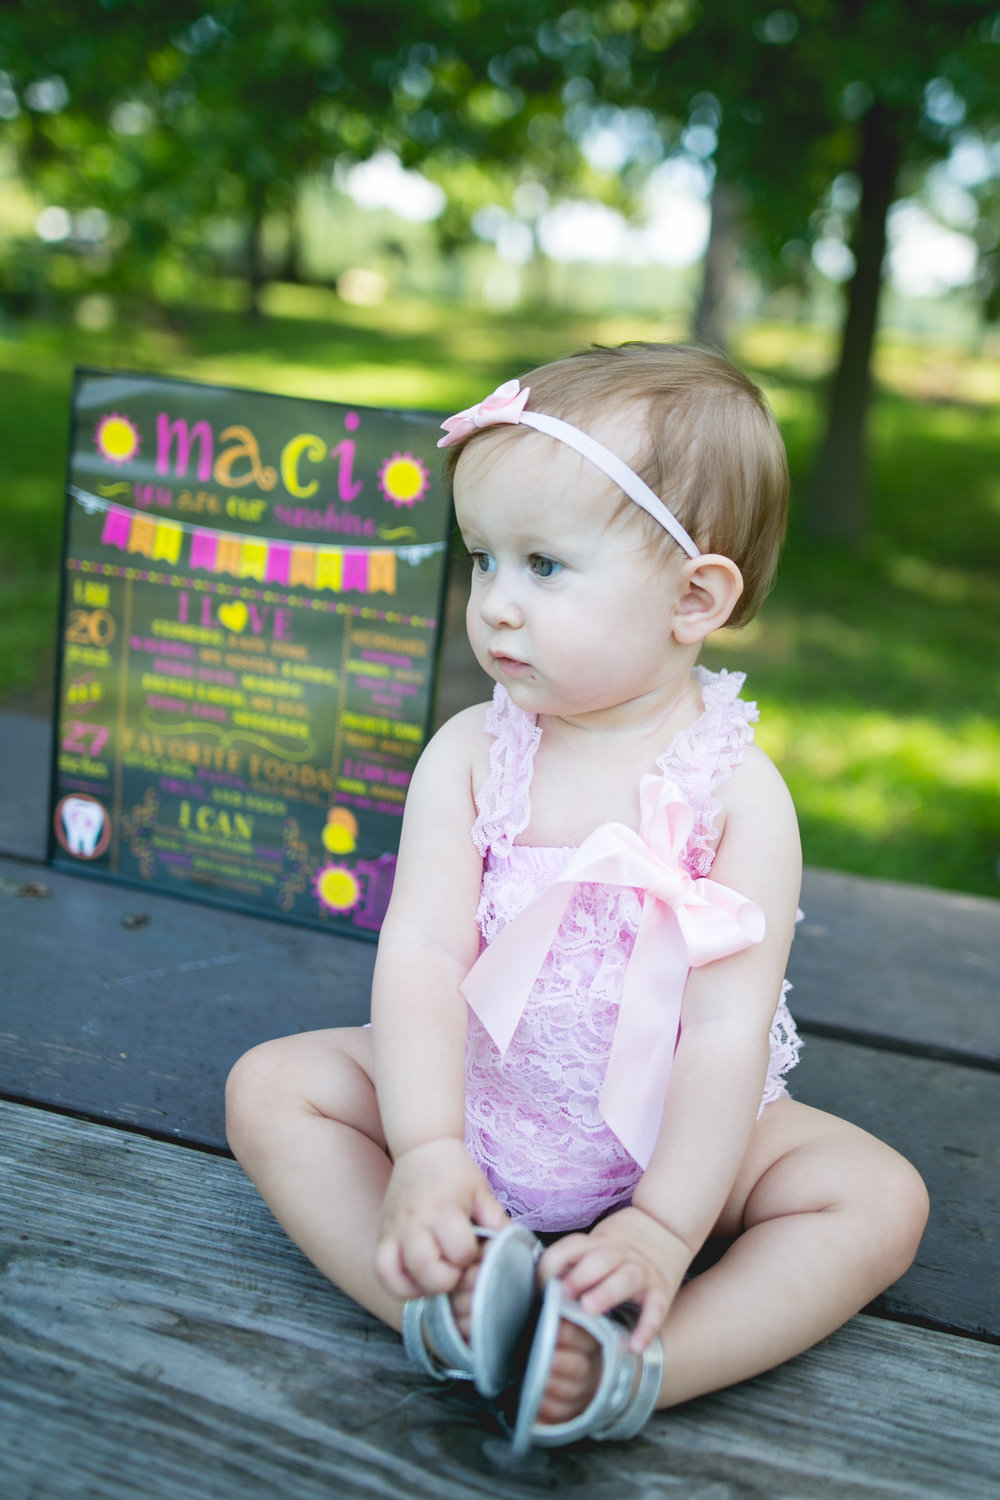 The Mott Family - A Greene Lane Park Family Session by Swiger Photography.  Family photos and first birthday session